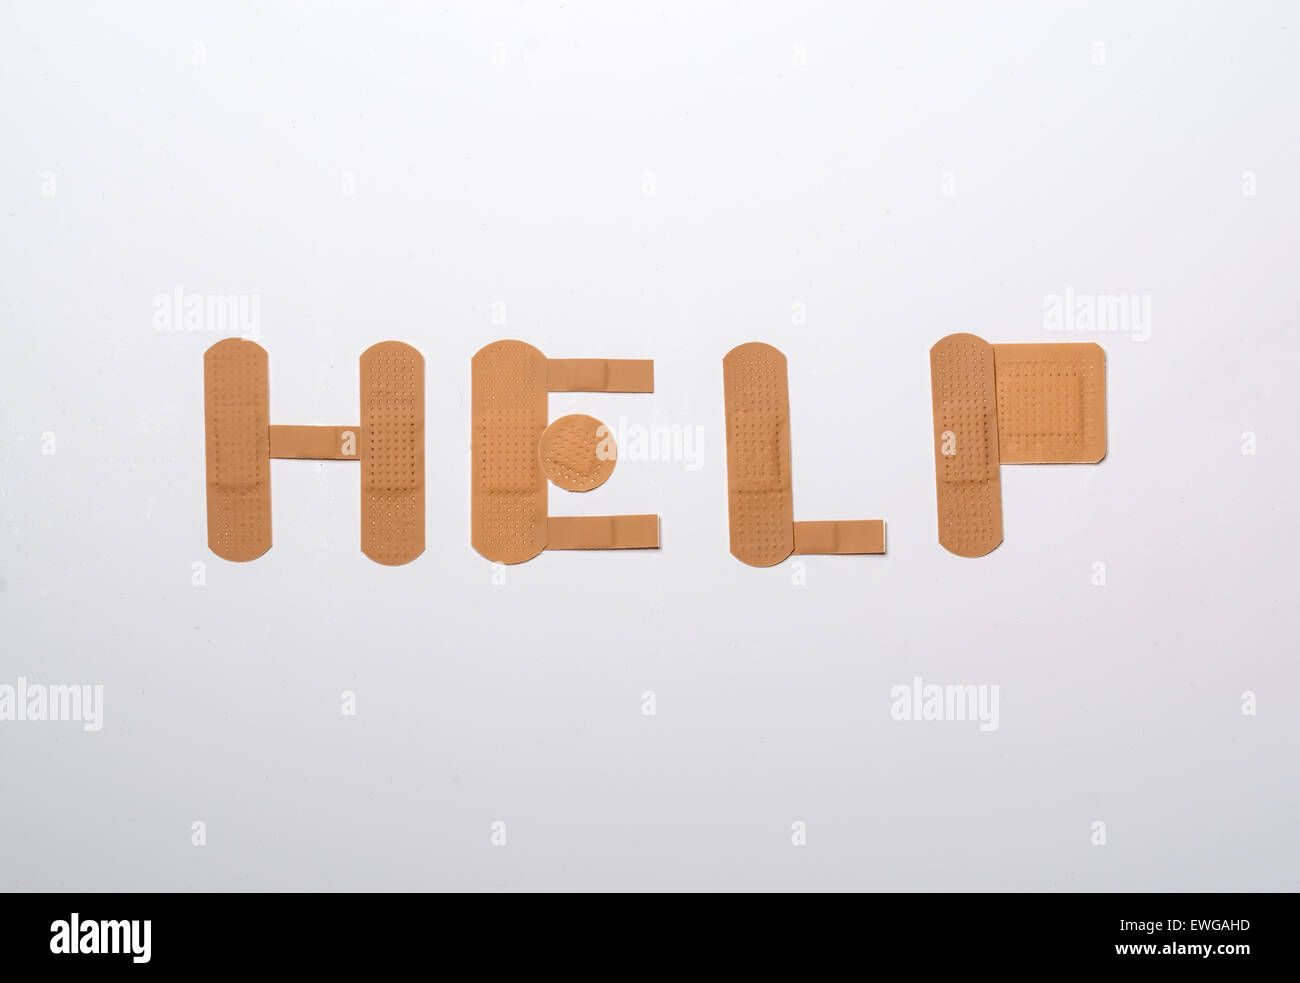 bandages forming the word help over white background Stock Photo